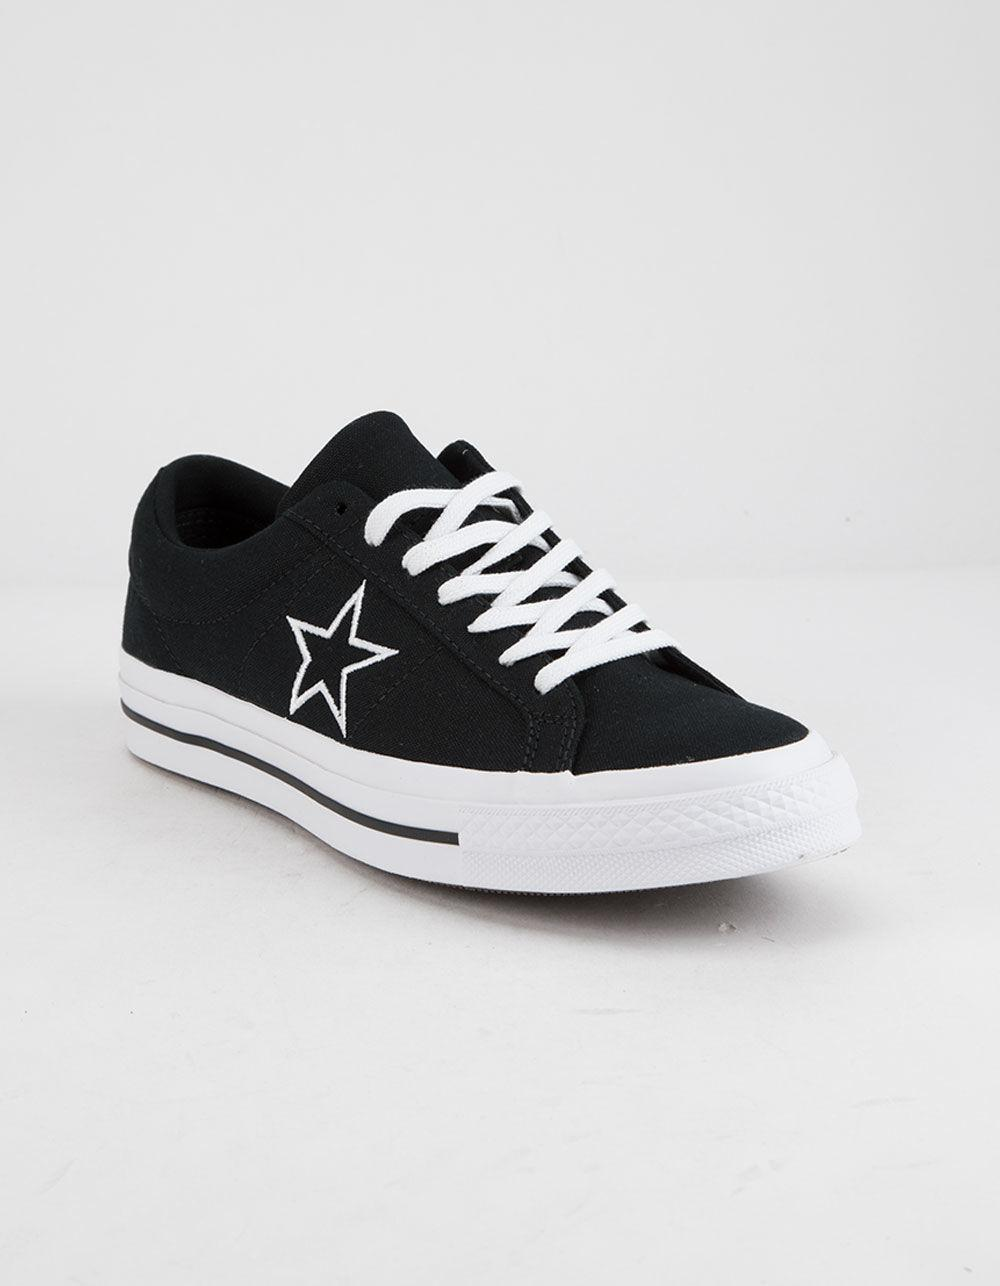 c4527f1717f5 Lyst - Converse One Star Ox Black   White Low Top Shoes in Black